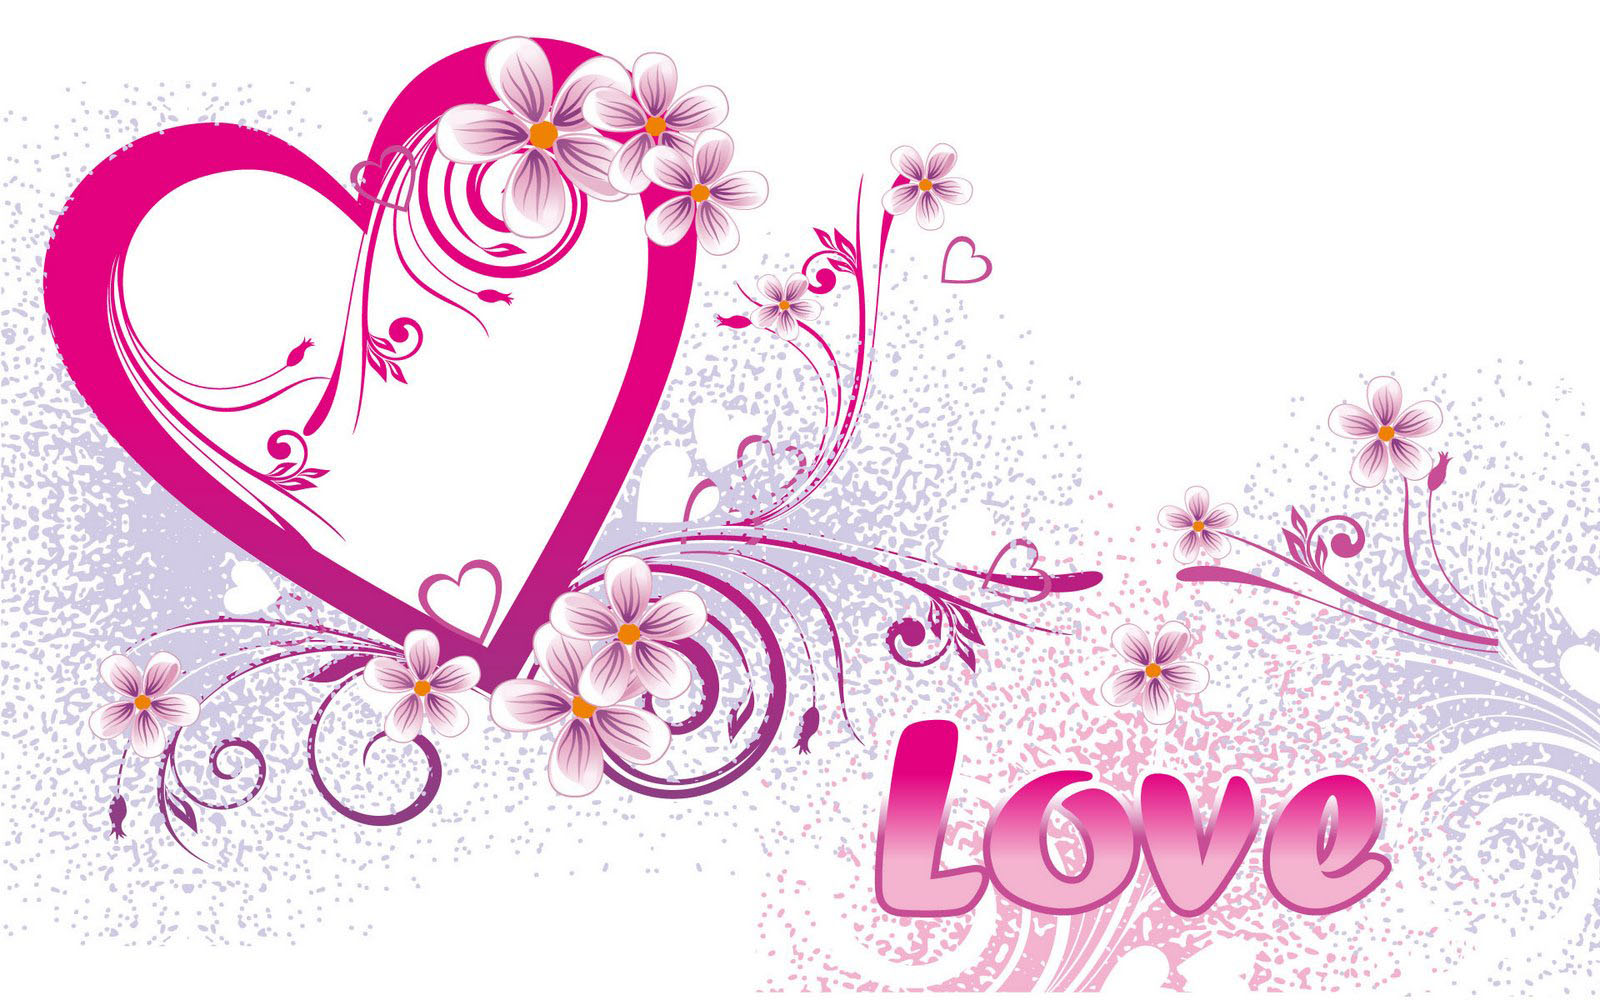 Love Wallpaper For New : wallpapers: New Love Wallpapers